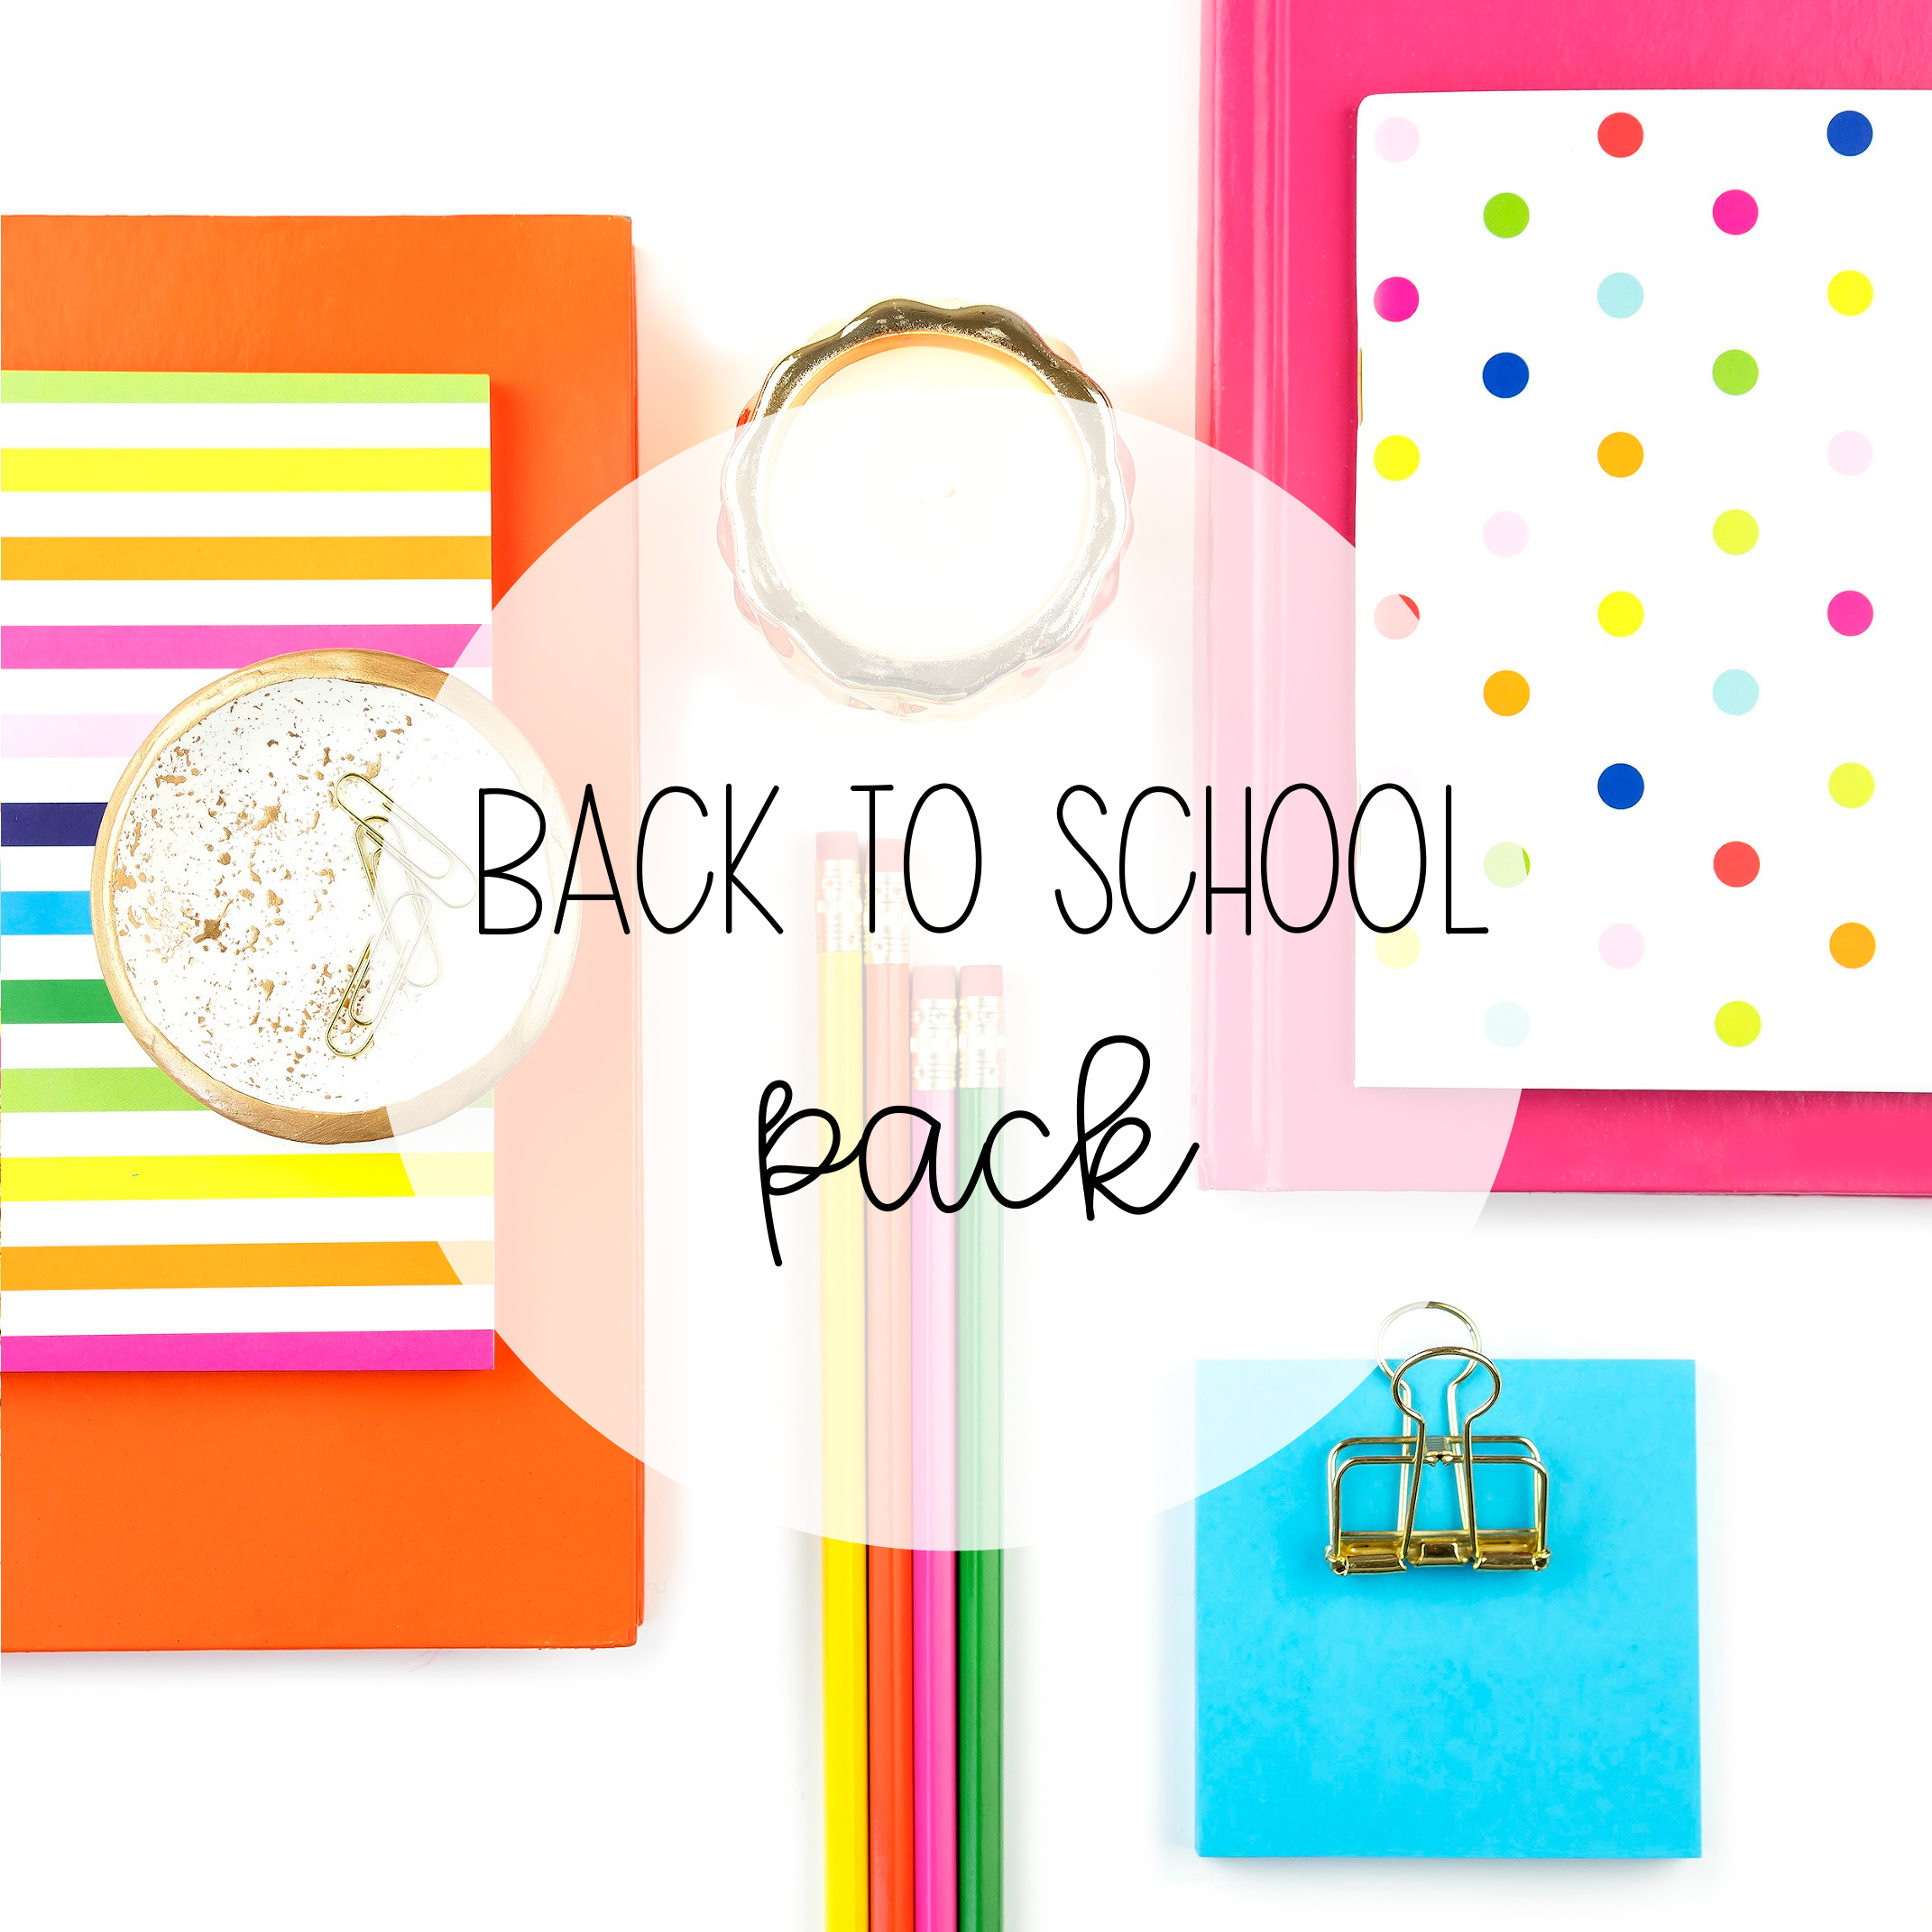 Back to School 2021 Pack